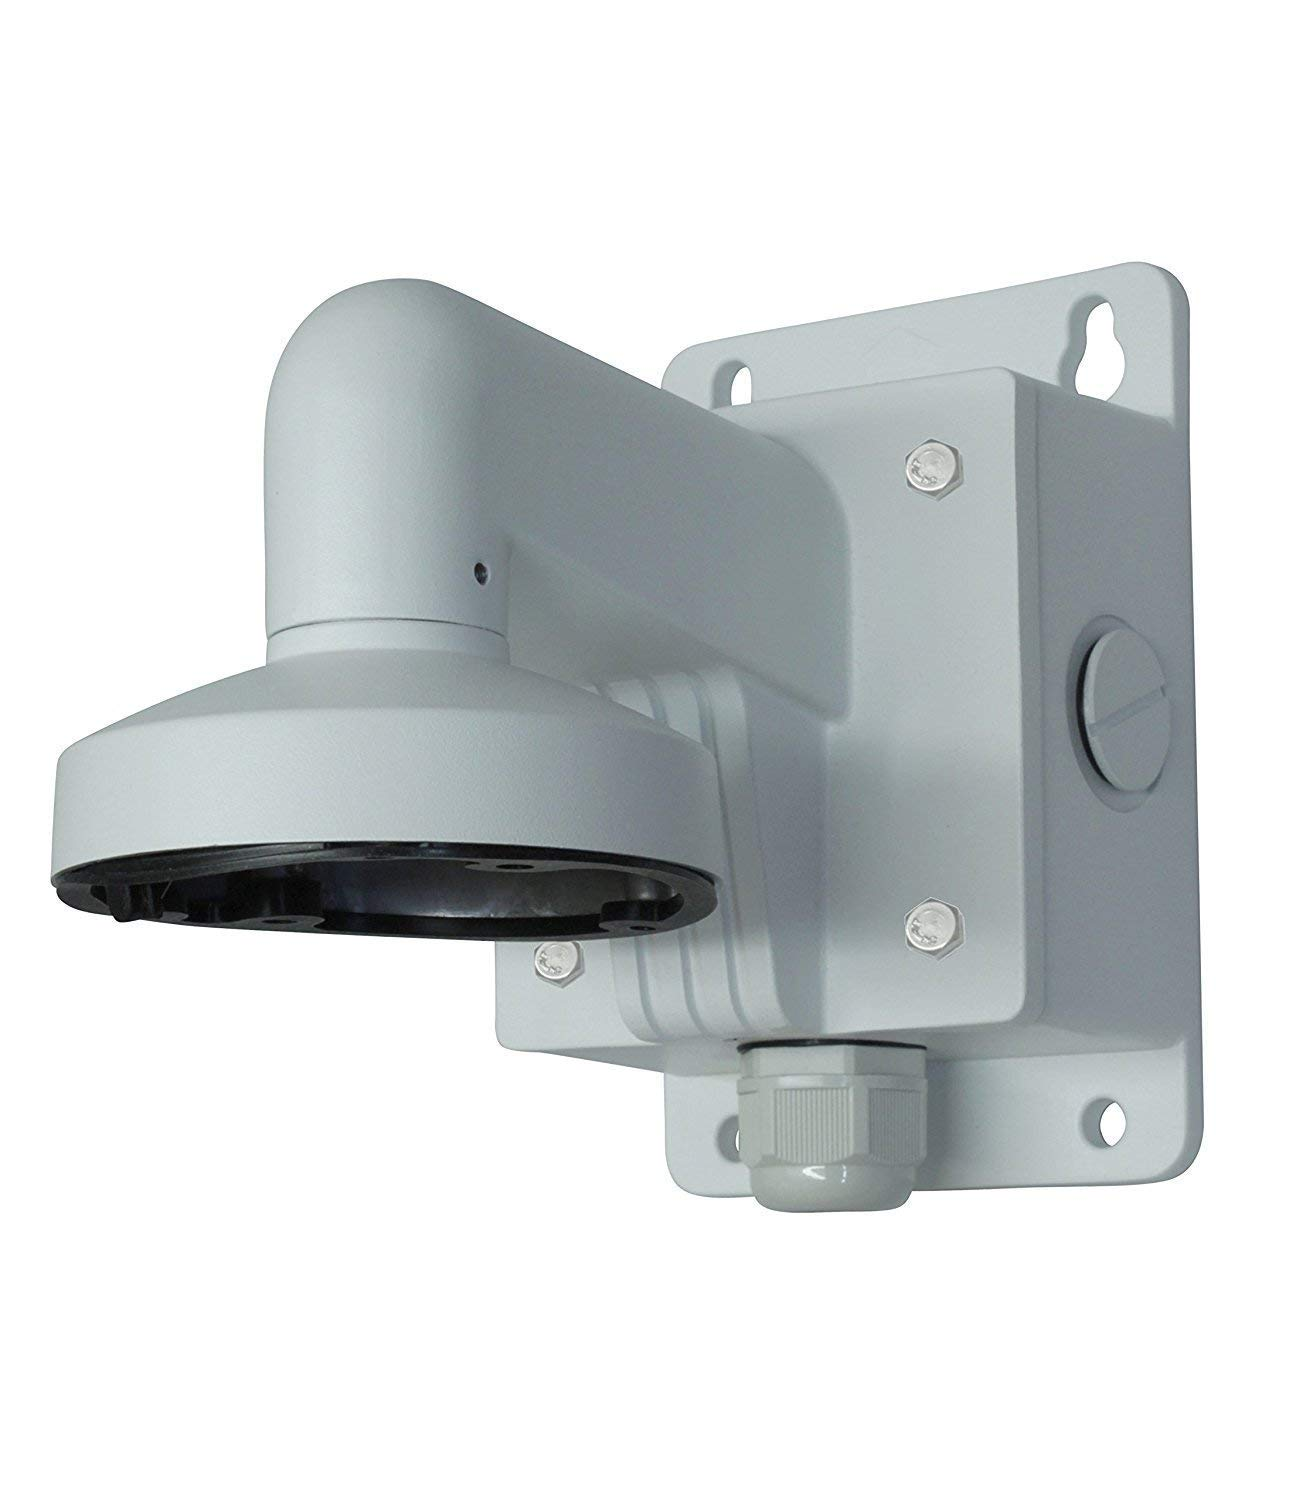 WMS WML PC110B DS-1272ZJ-110B Wall Mount Bracket for Hikvision Dome Camera DS-2CD2142FWD-I (8 Pack) by HAWK EYE SURVEILLANCE (Image #2)